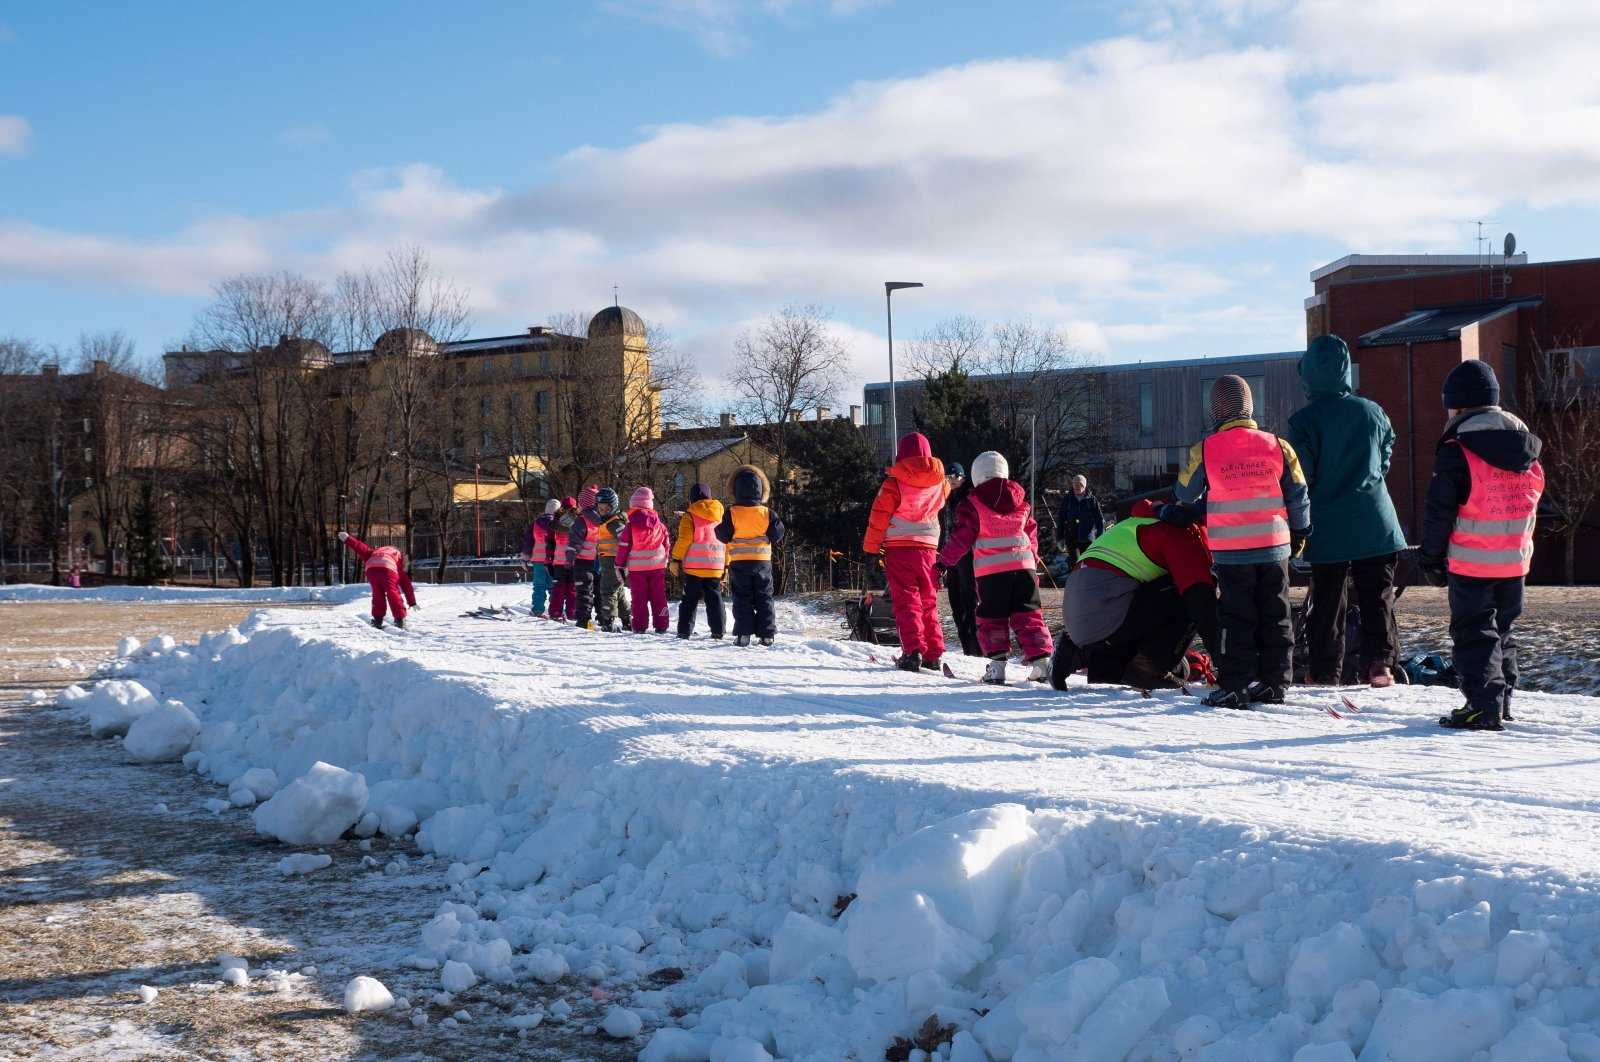 Children on excursions with their daycare groups, cross-country skiing on trails made of artificial snow in Oslo, Norway, Feb. 10, 2021. (AFP Photo)